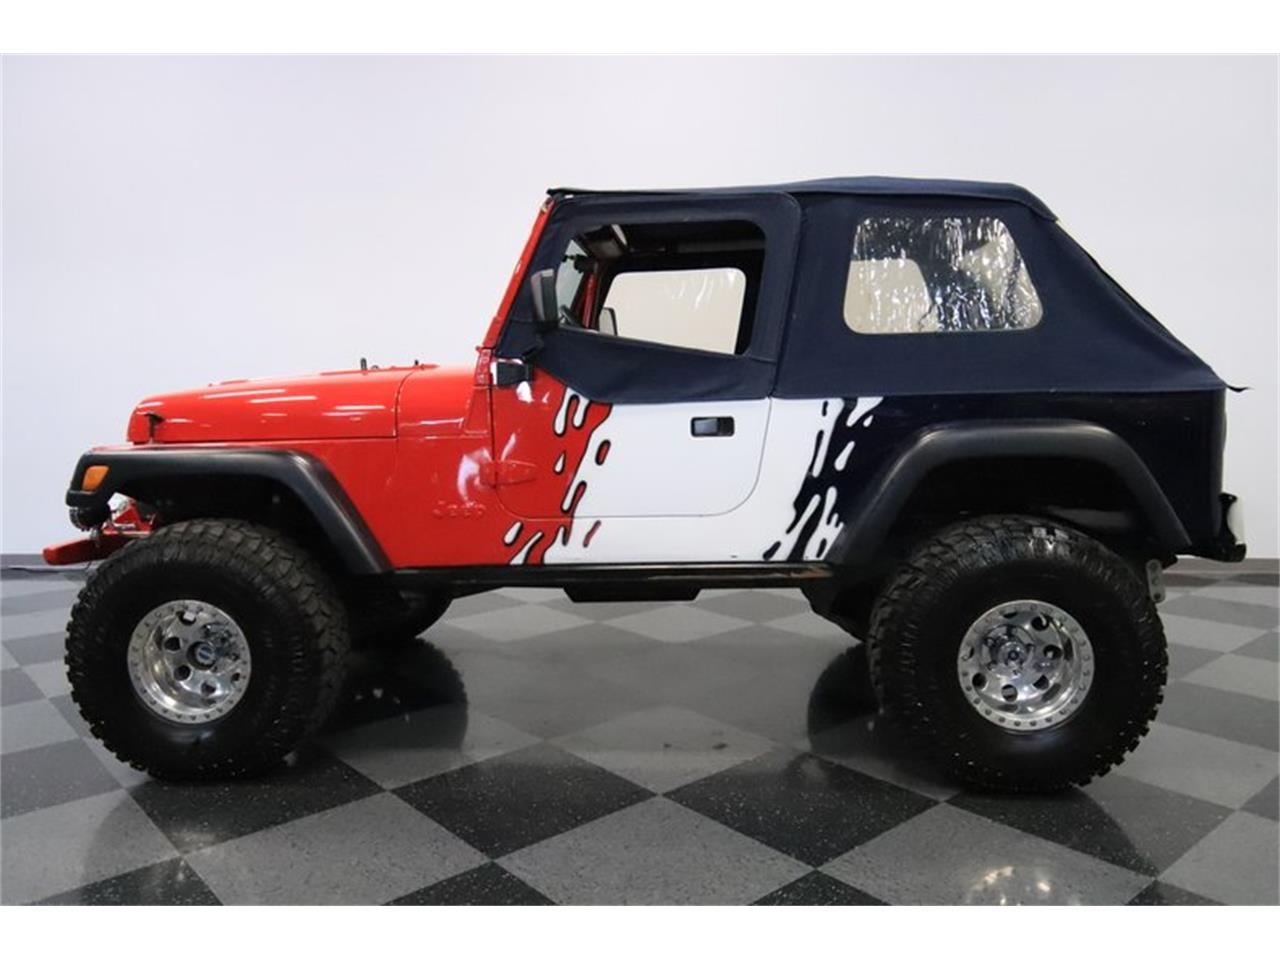 1983 Jeep CJ8 Scrambler for sale in Mesa, AZ – photo 22